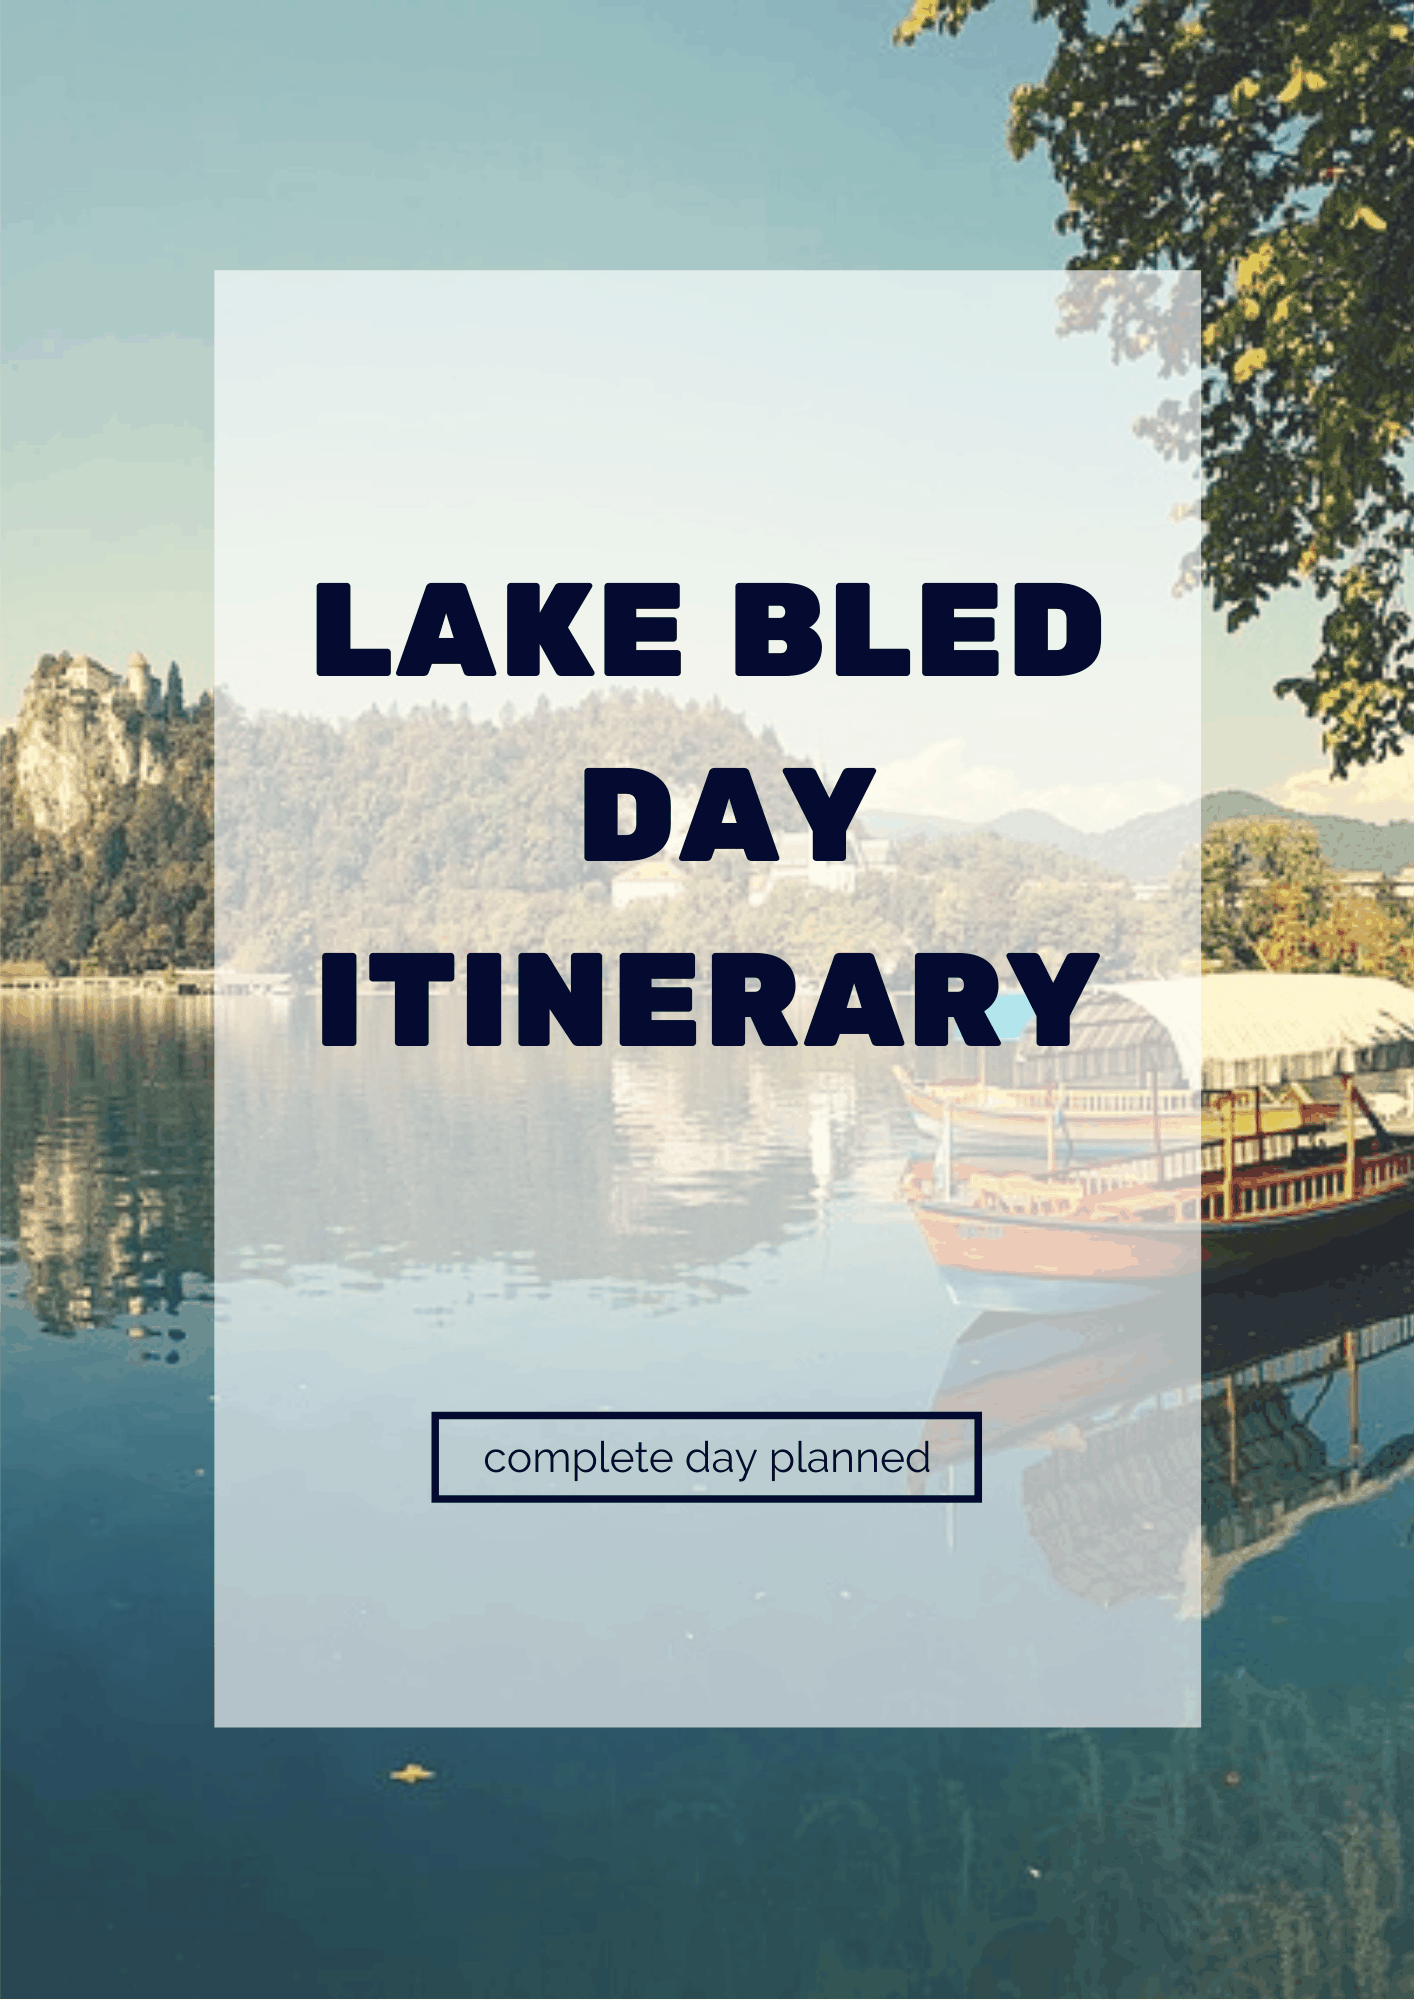 Lake Bled One Day Itinerary 2019